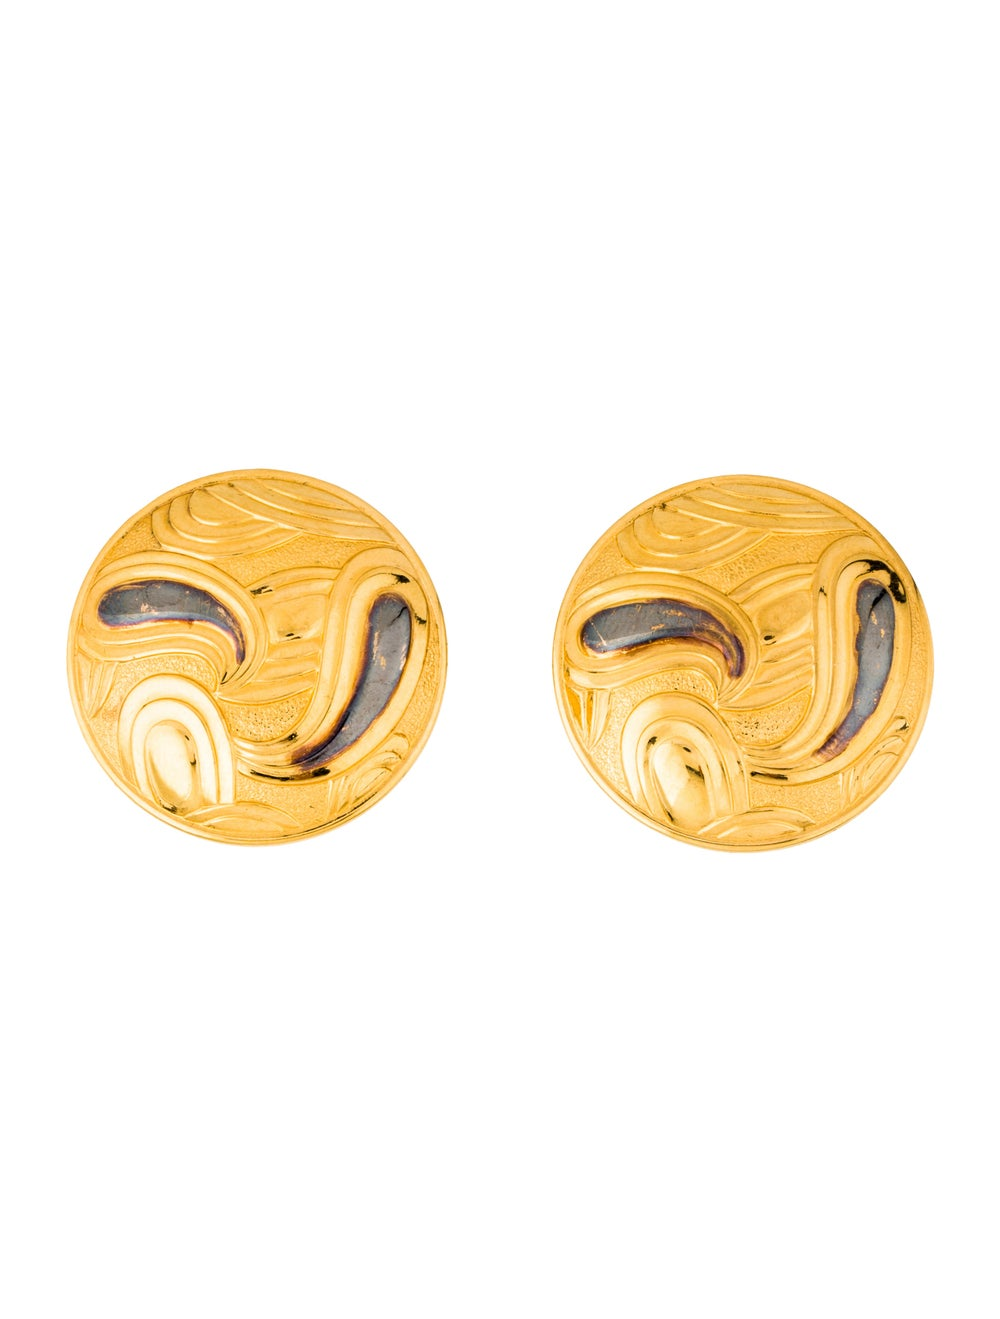 Lanvin Vintage Paisley Clip-On Earrings Gold - image 1